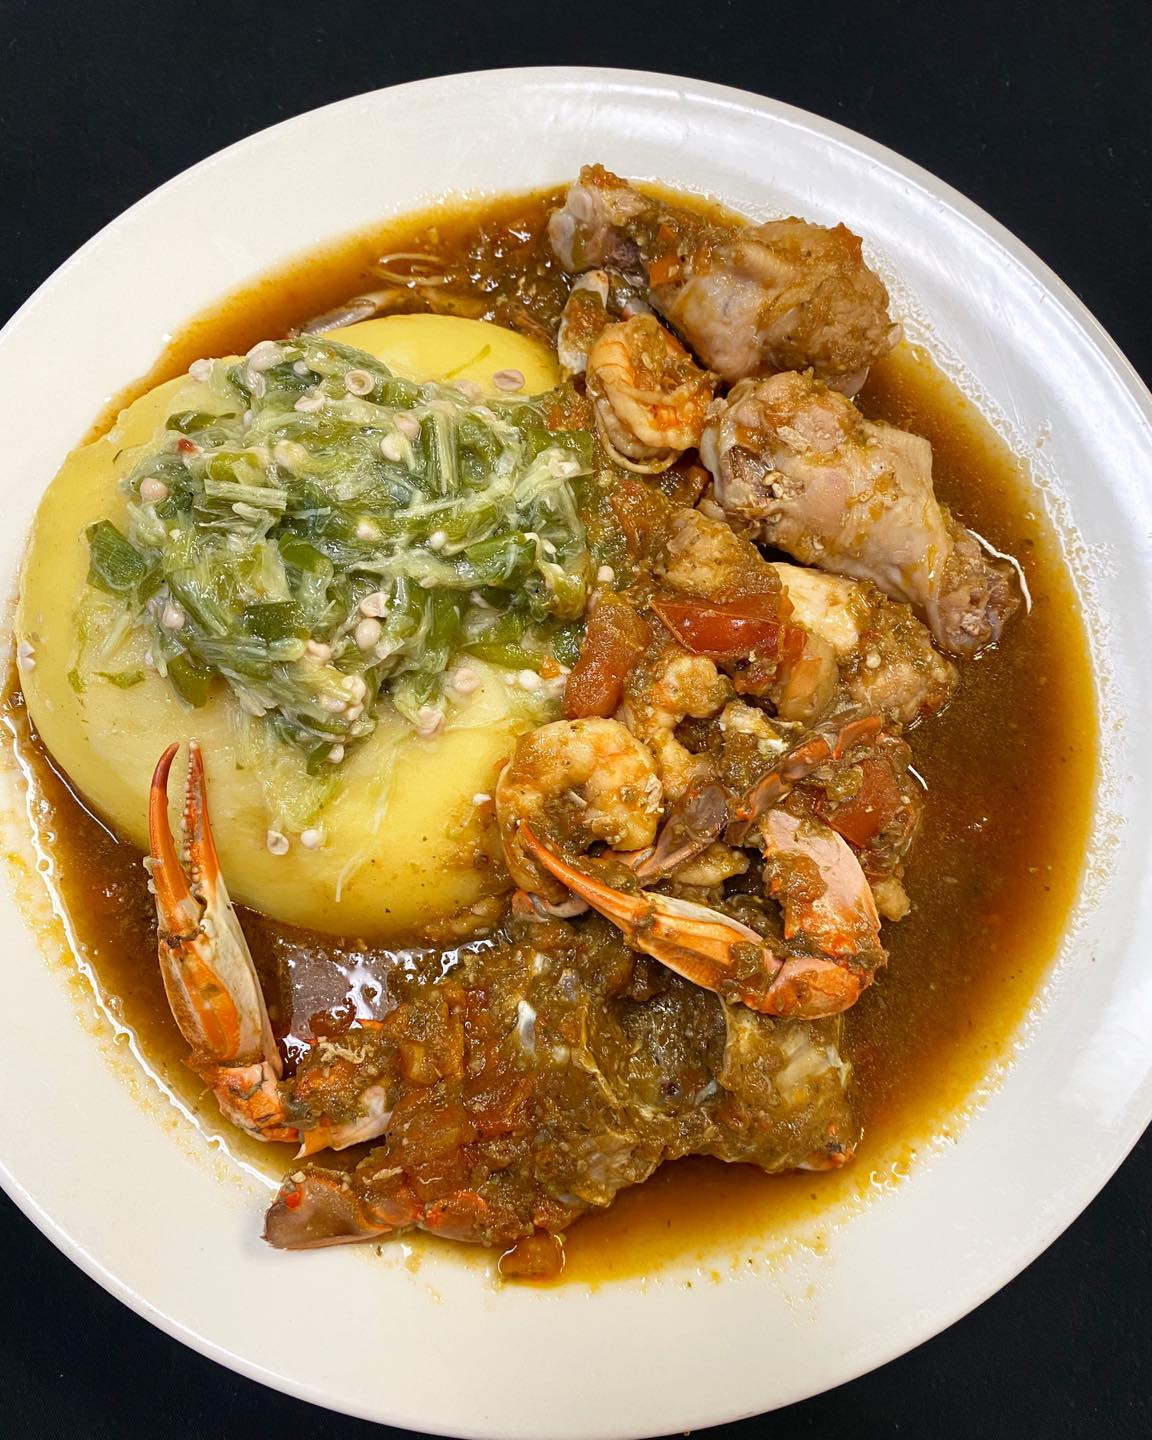 Fannie's West African Cuisine